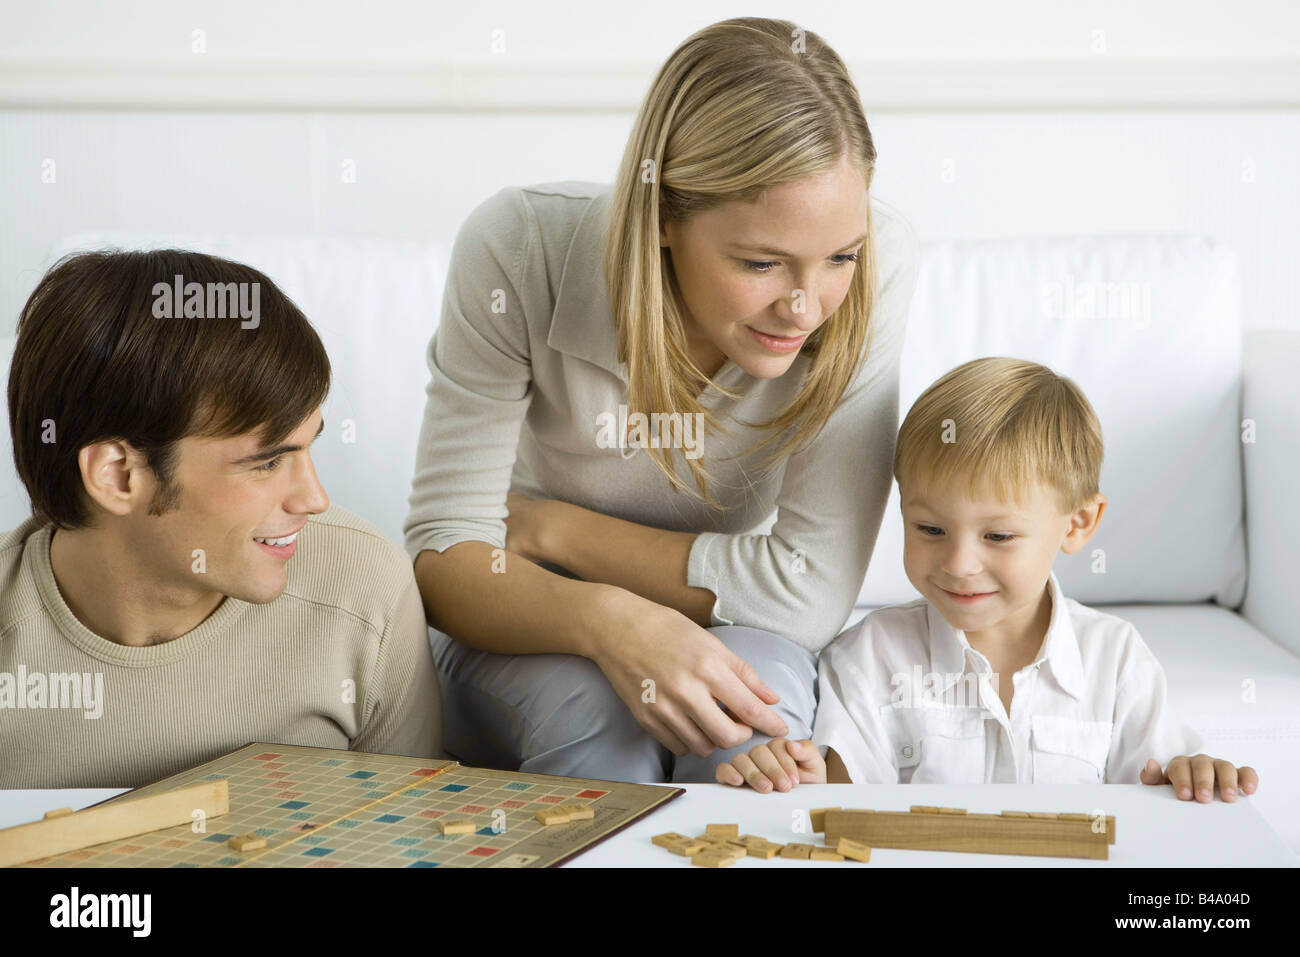 Family playing board game together Stock Photo